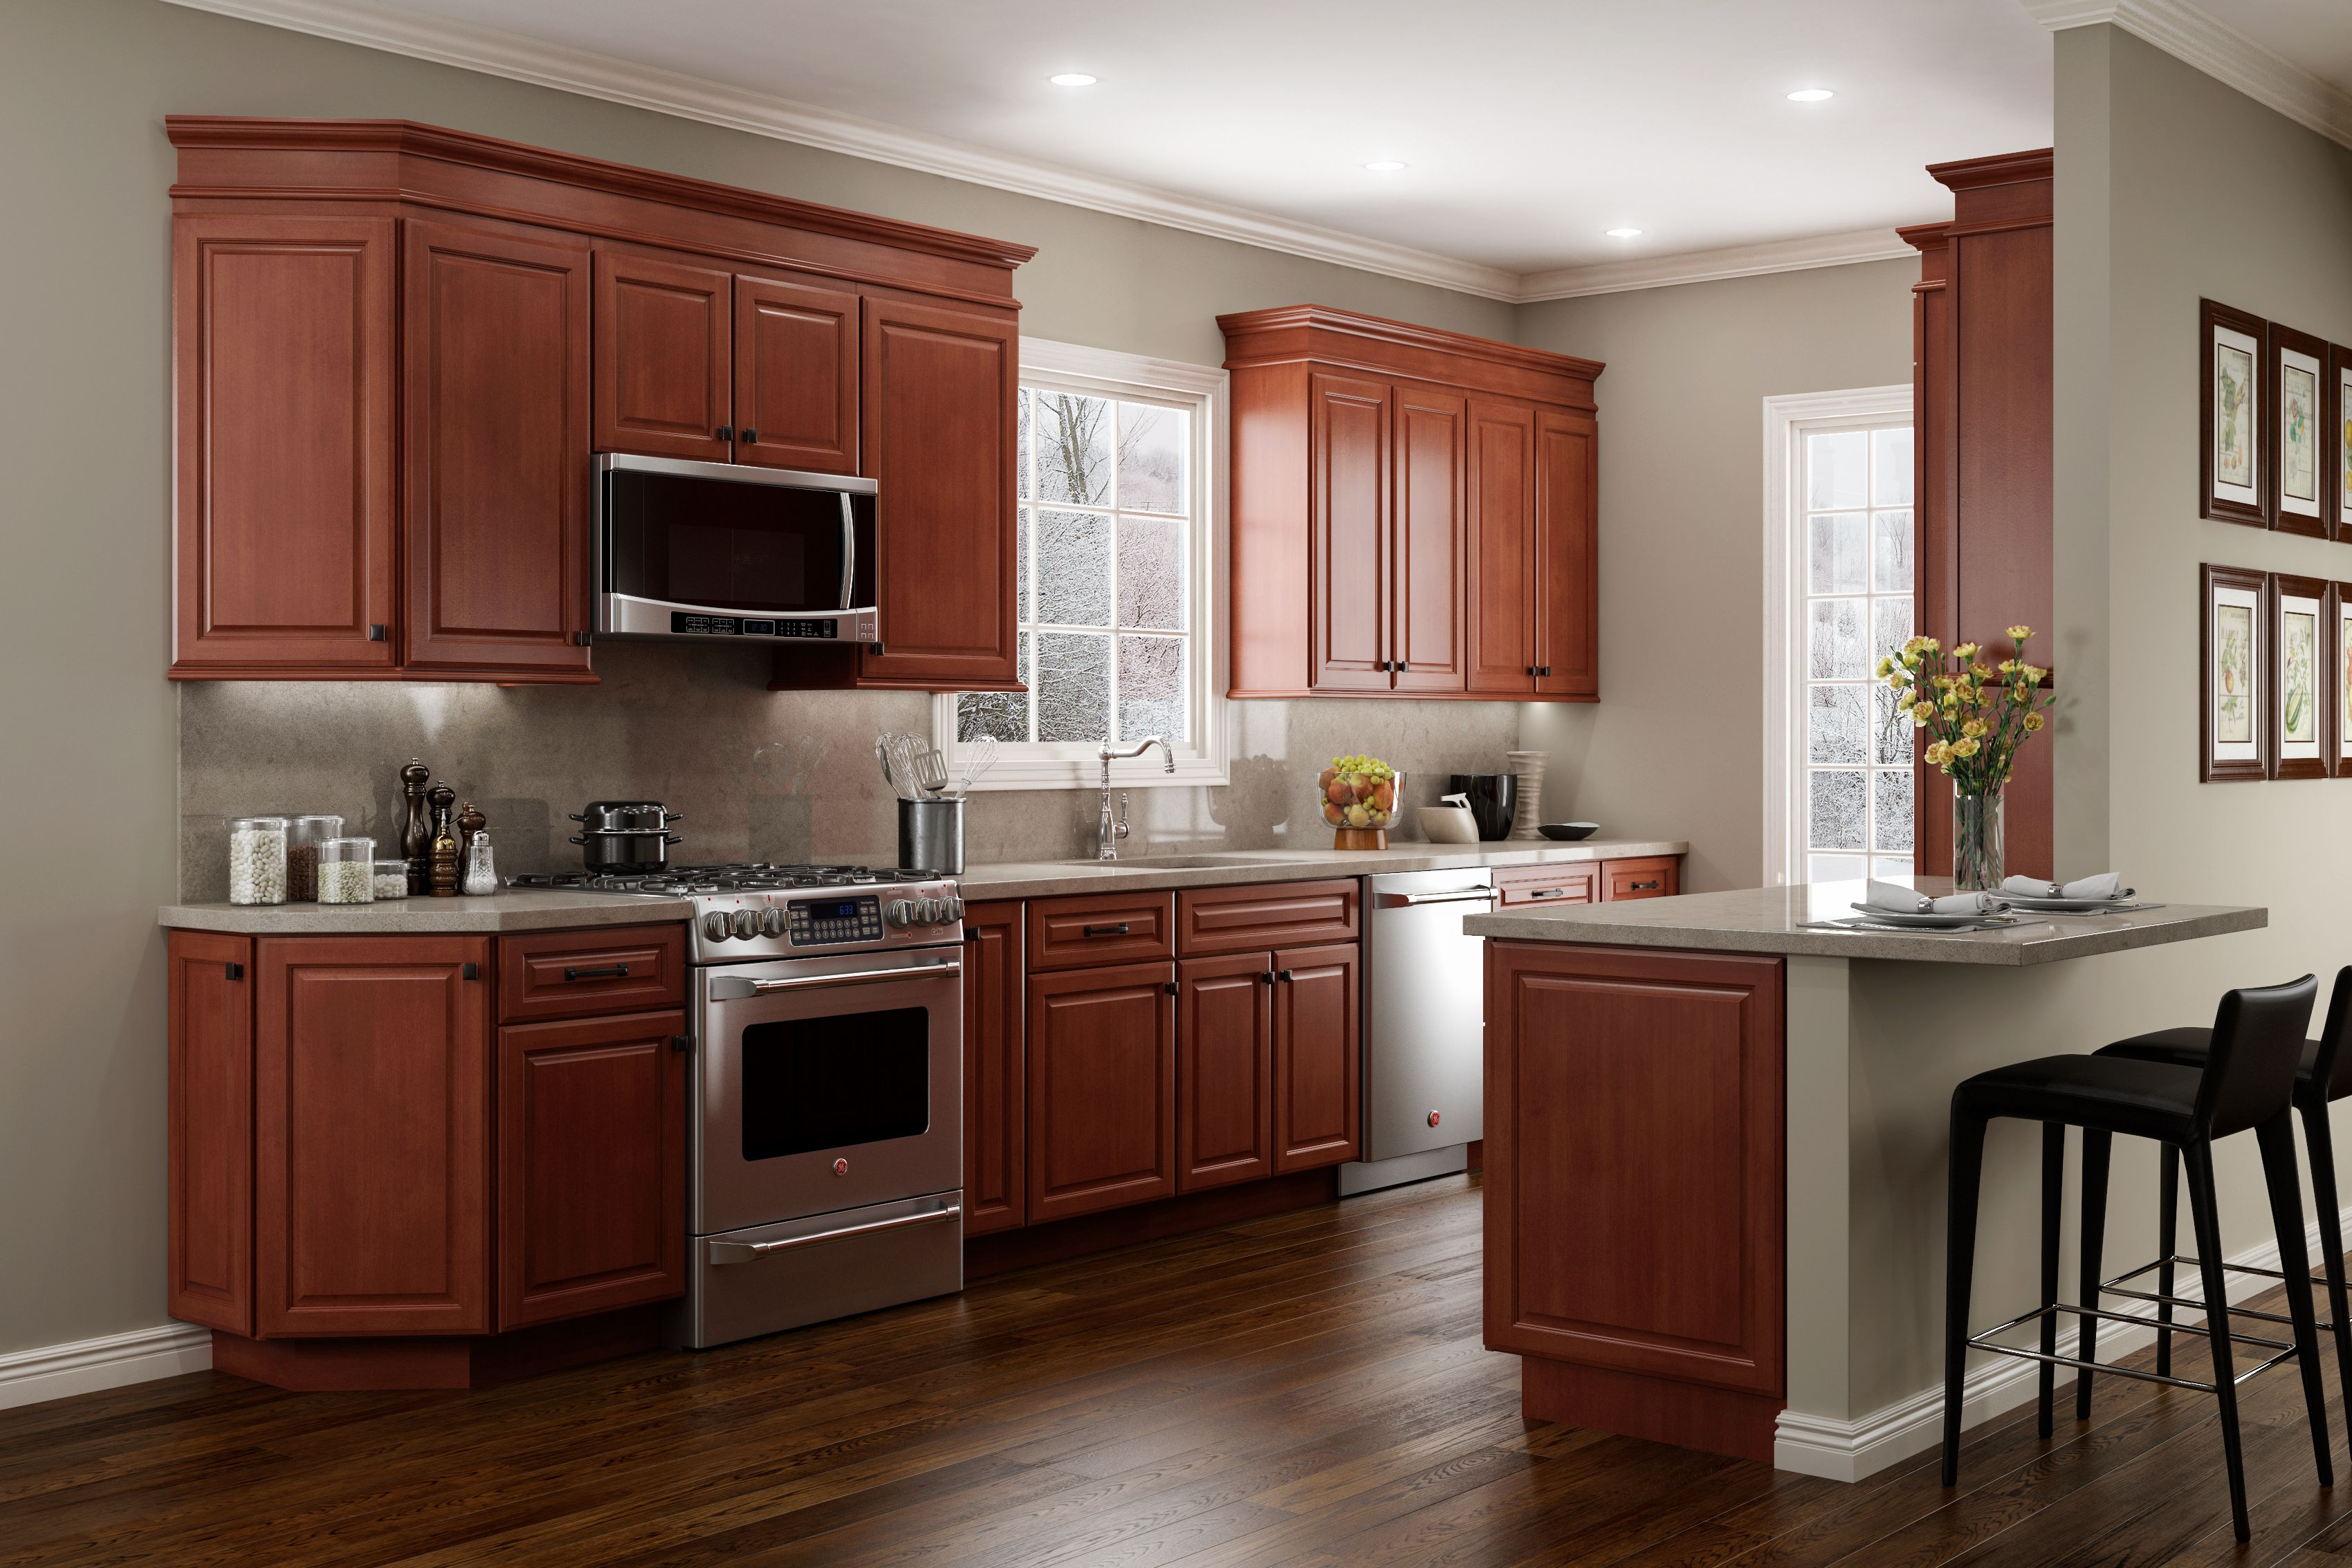 Jsi Cabinetry Quincy Cherry Kitchen Stained Kitchen Cabinets Cherry Wood Cabinets Cherry Wood Kitchen Cabinets